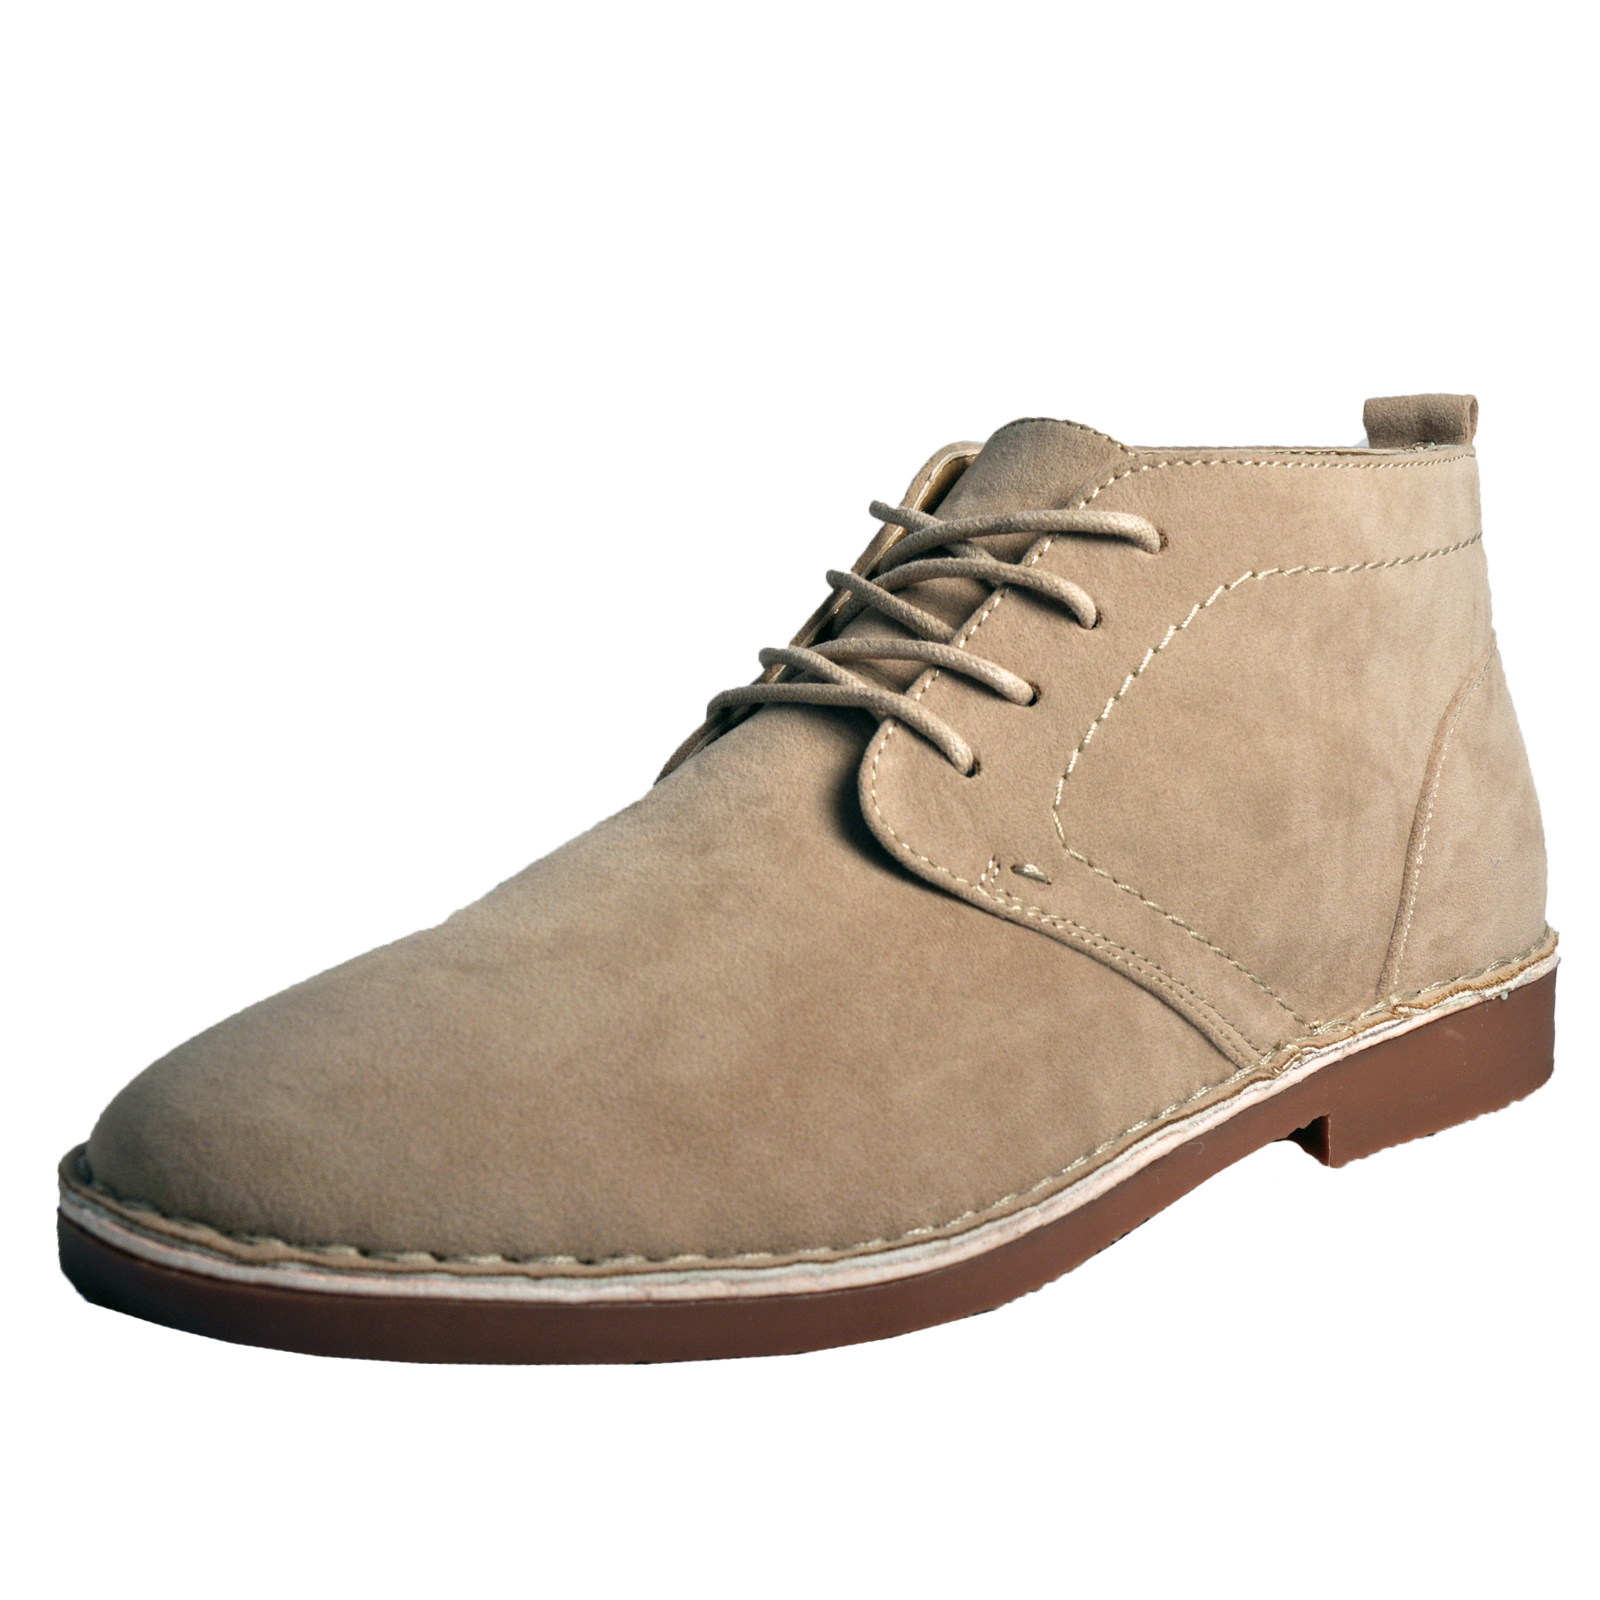 premier sahara mens faux suede classic casual desert boots stone ebay. Black Bedroom Furniture Sets. Home Design Ideas